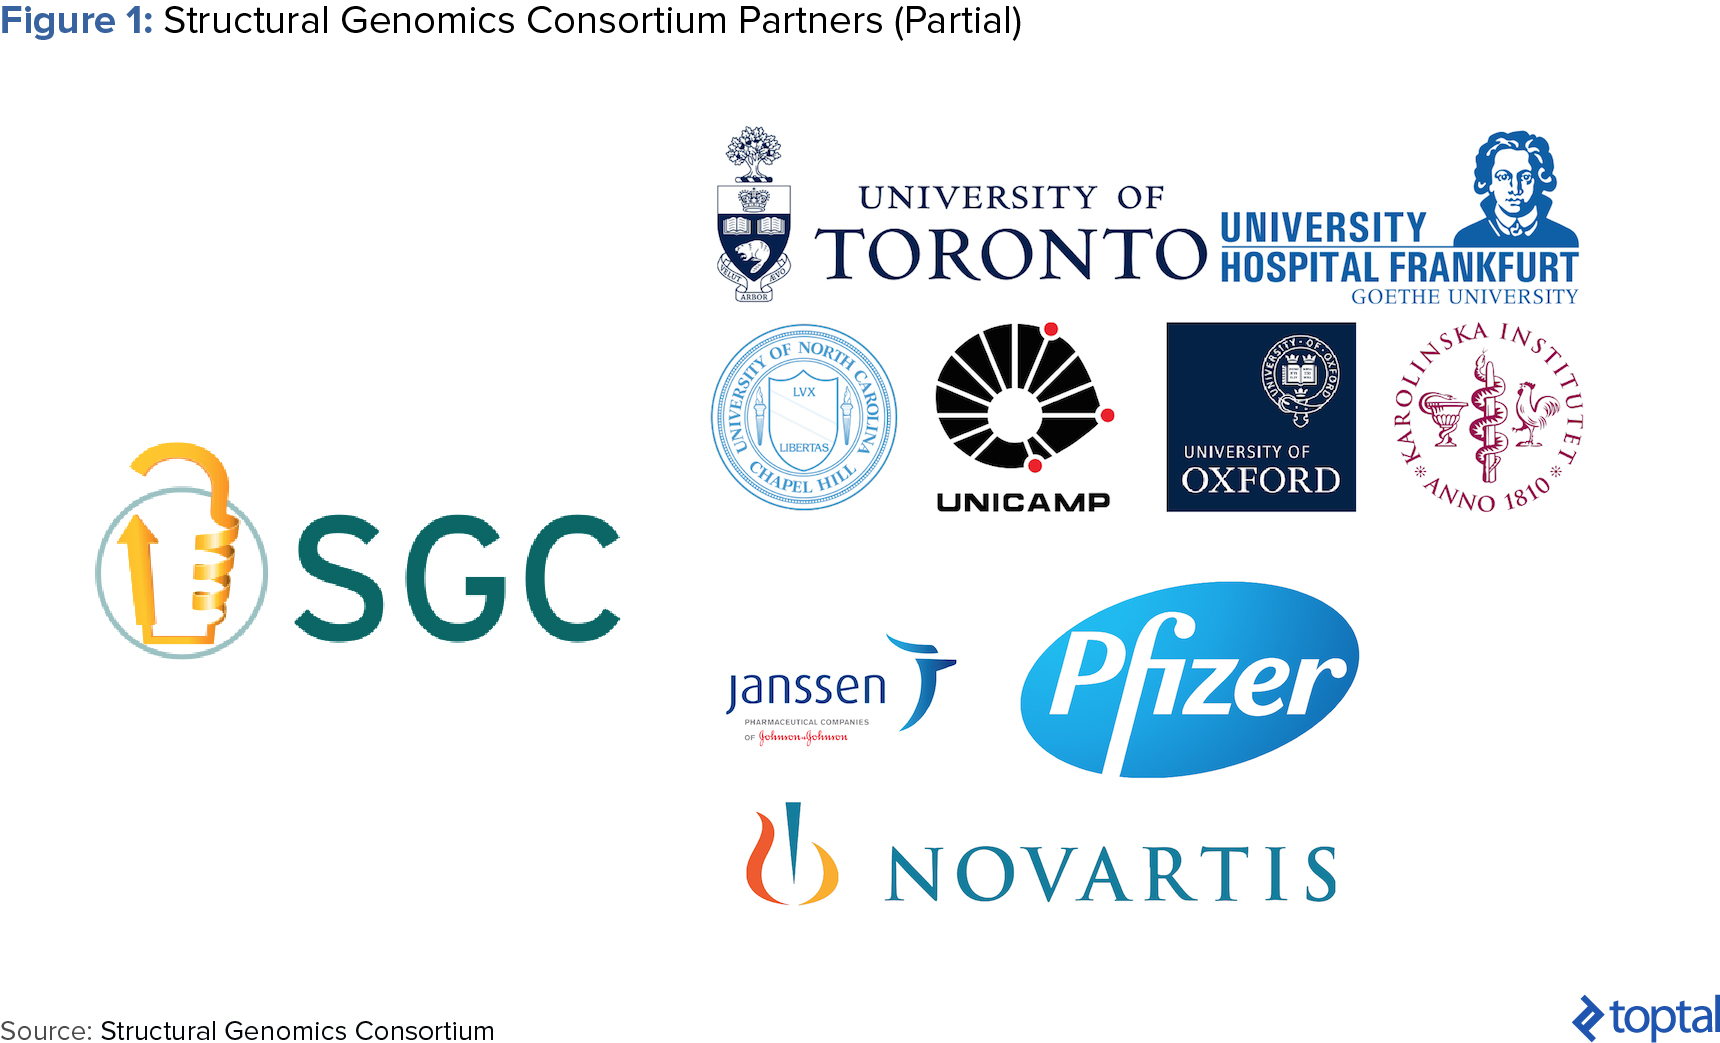 Figure 1: Structural Genomics Consortium Partners (Partial)